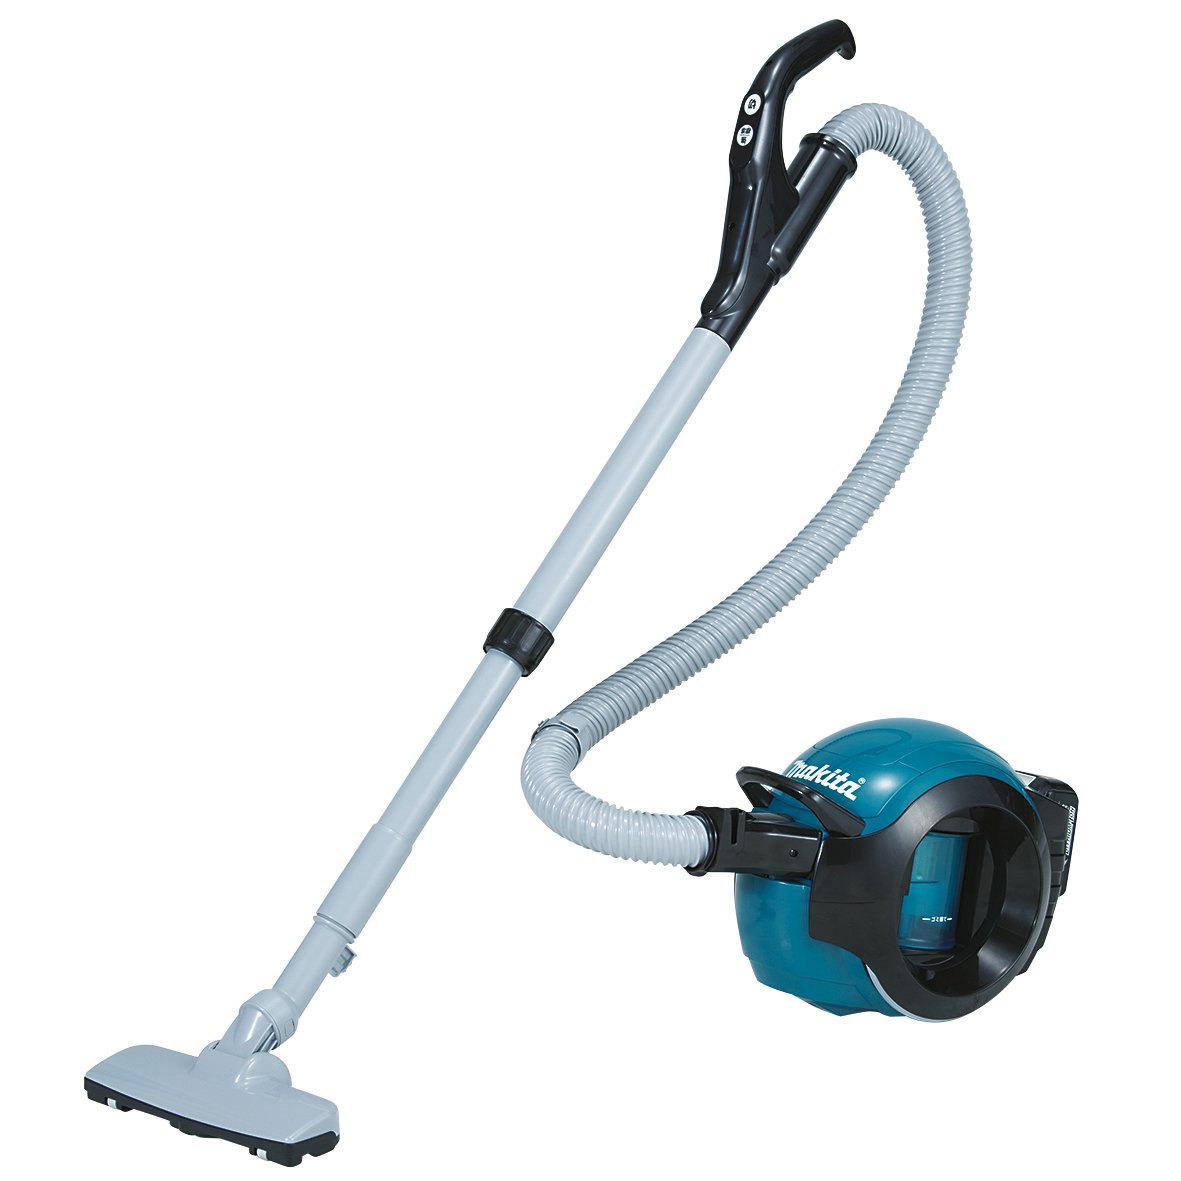 Makita DCL500Z 18V LXT Lithium-Ion Cordless Cyclonic Canister Vacuum, Tool Only (Discontinued by Manufacturer)